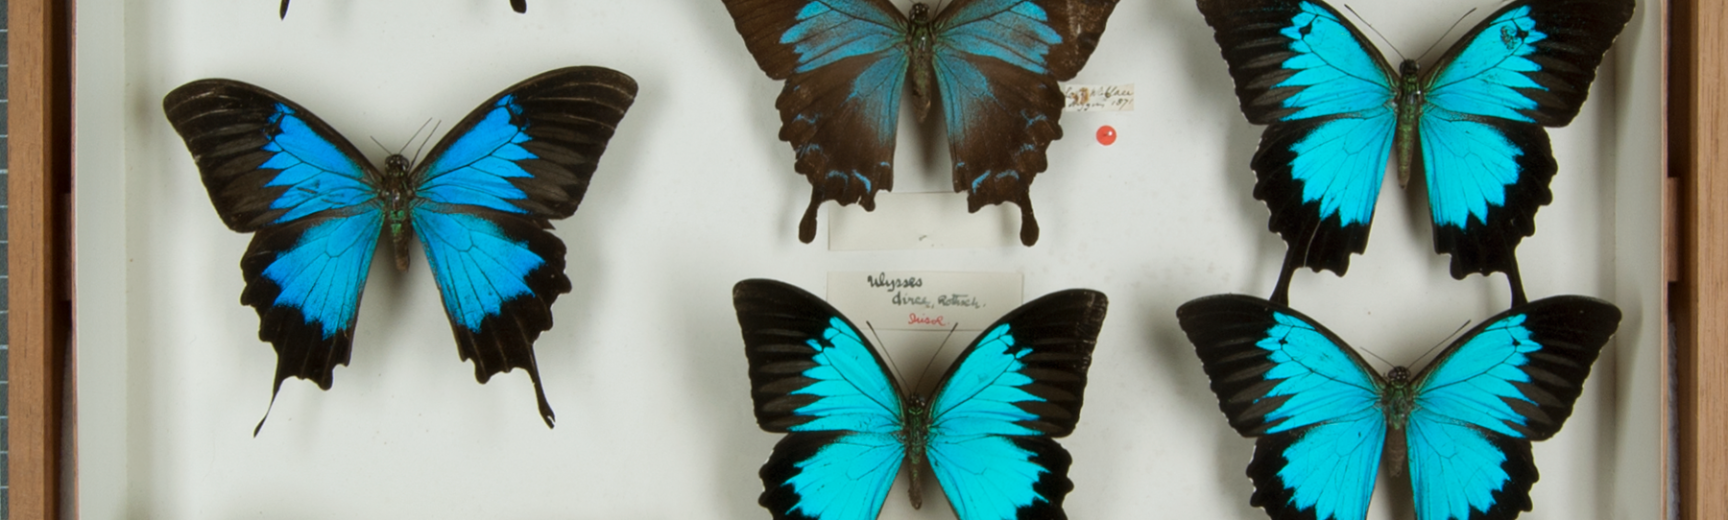 Alfred Russel Wallace collection at the Museum of Natural History